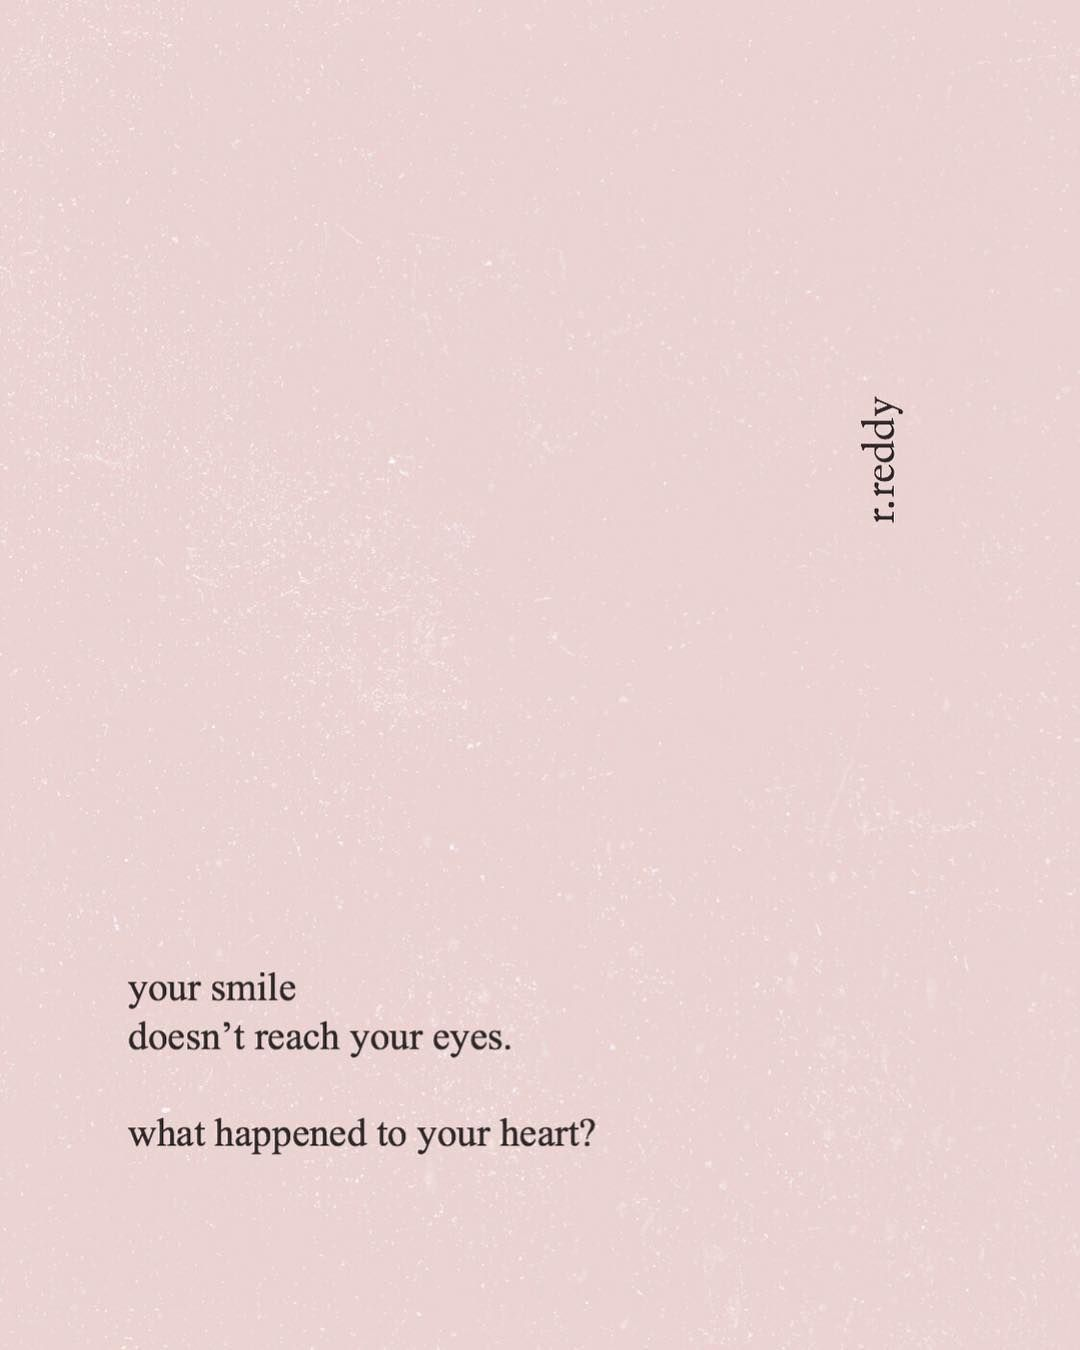 tell me who hurt your heart this bad  your smile is